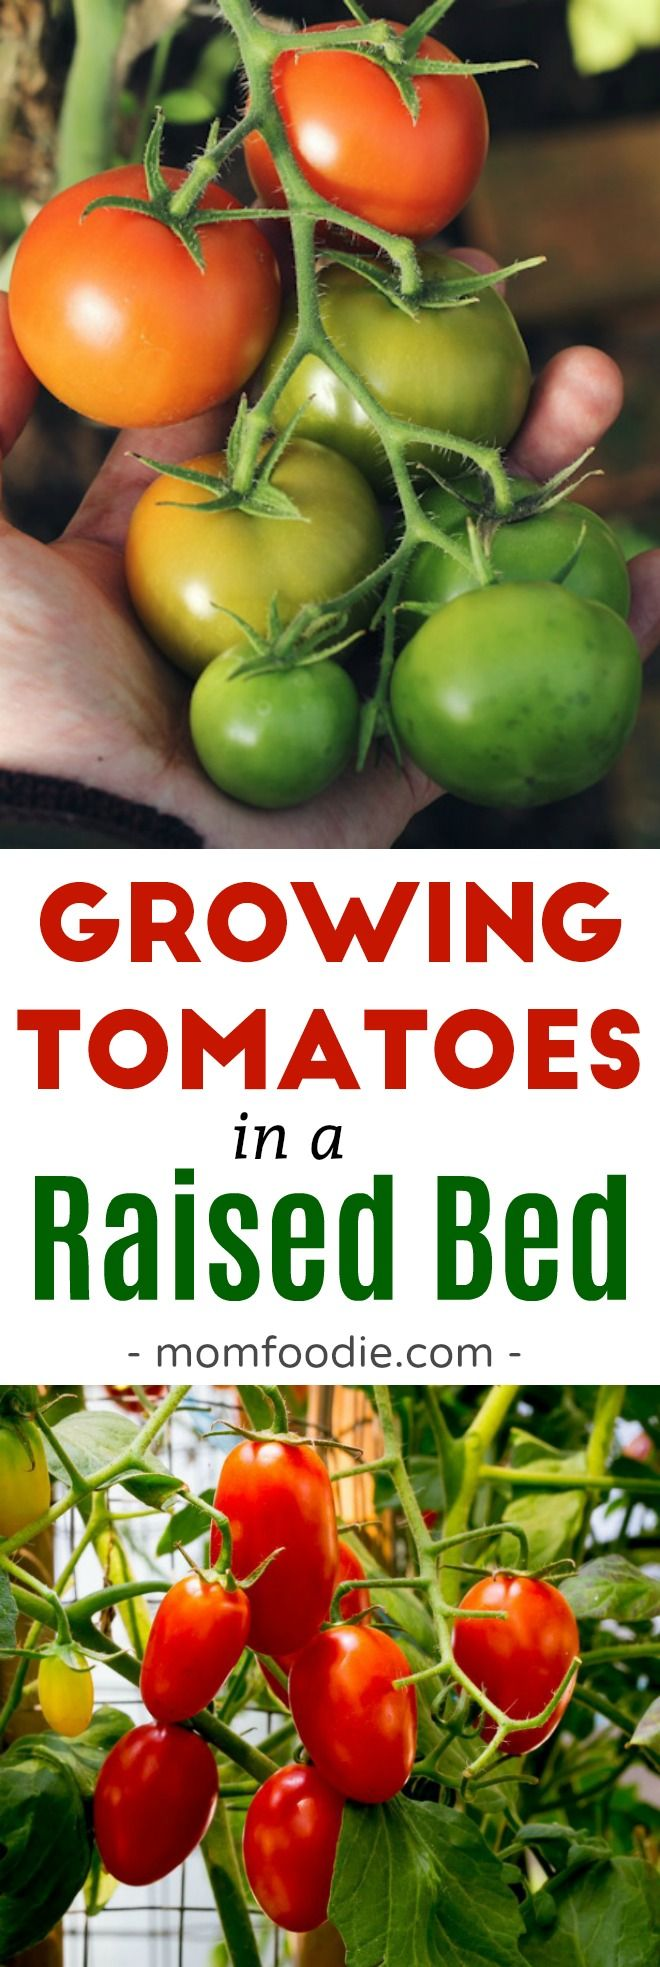 How to Grow Tomatoes in a Raised Bed Growing tomatoes